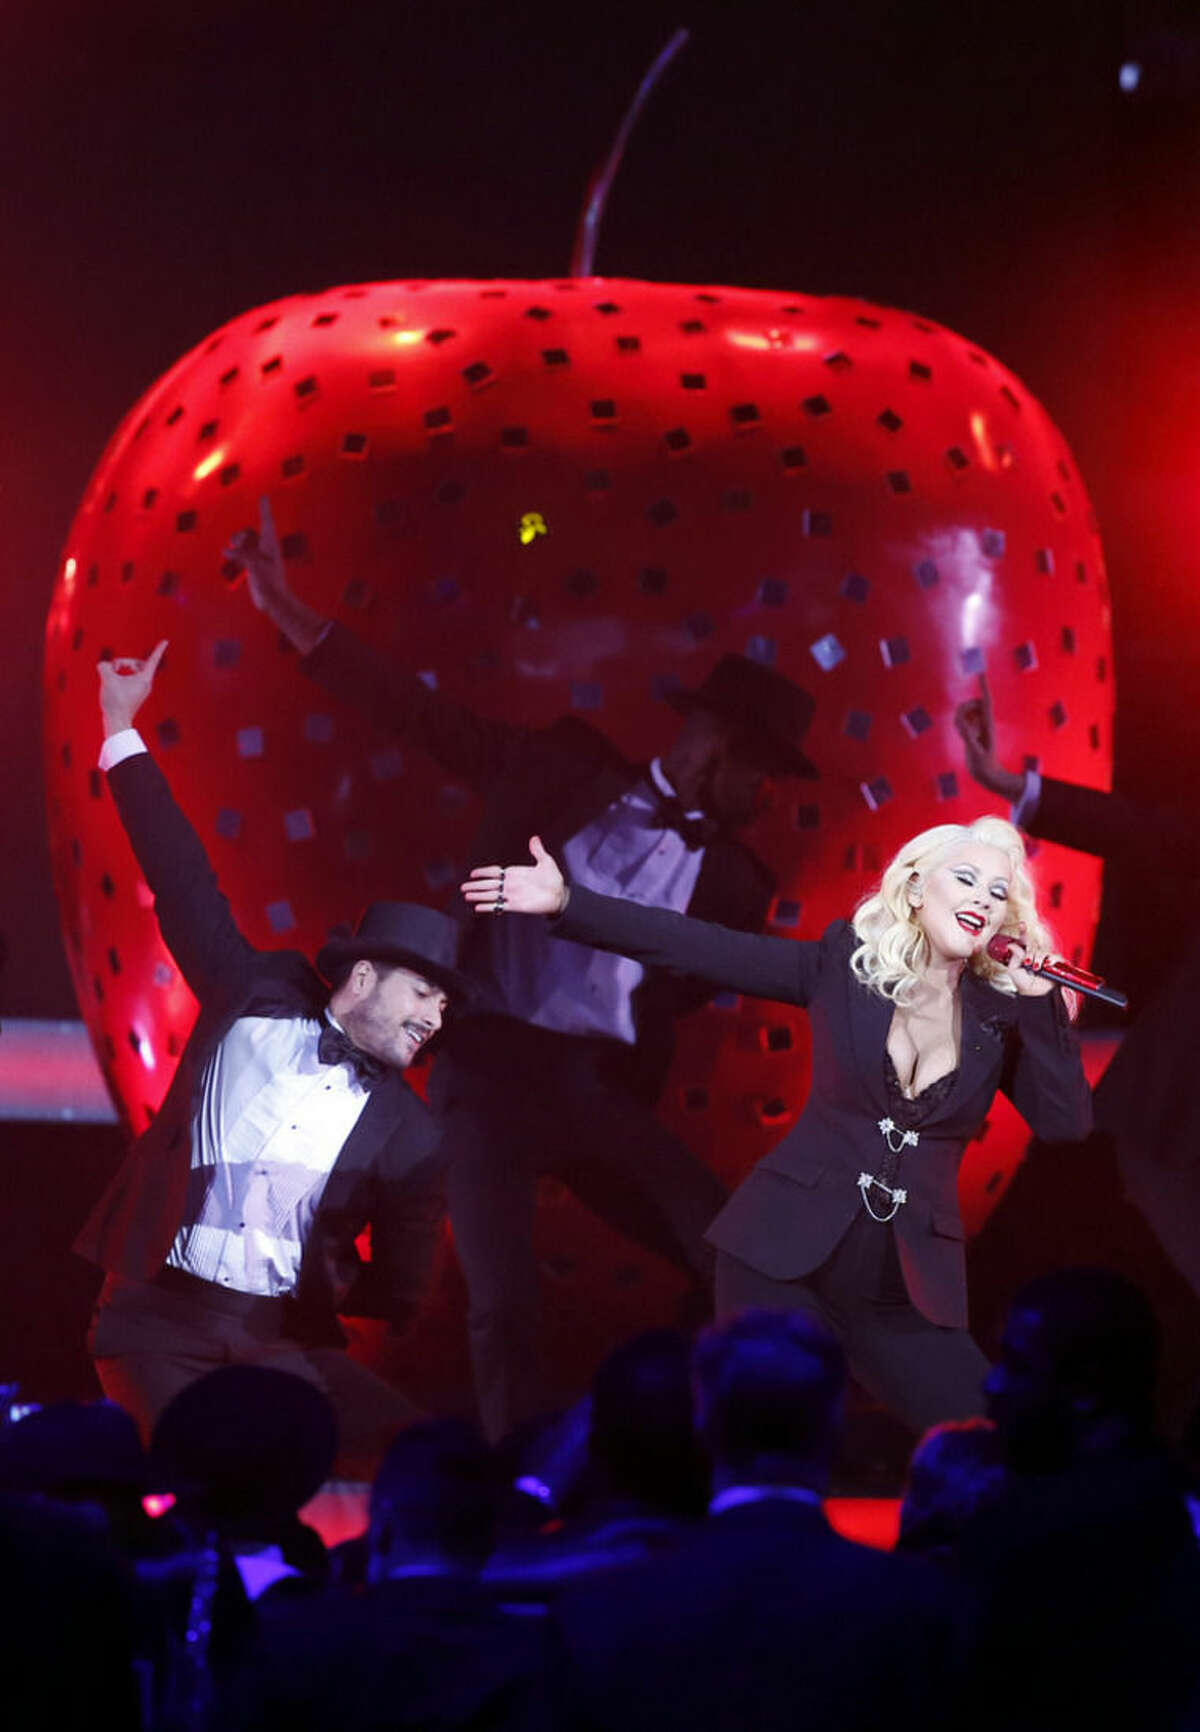 Christina Aguilera performs prior to the start of the NBA All-Star basketball game, Sunday, Feb. 15, 2015, in New York. (AP Photo/Kathy Willens)